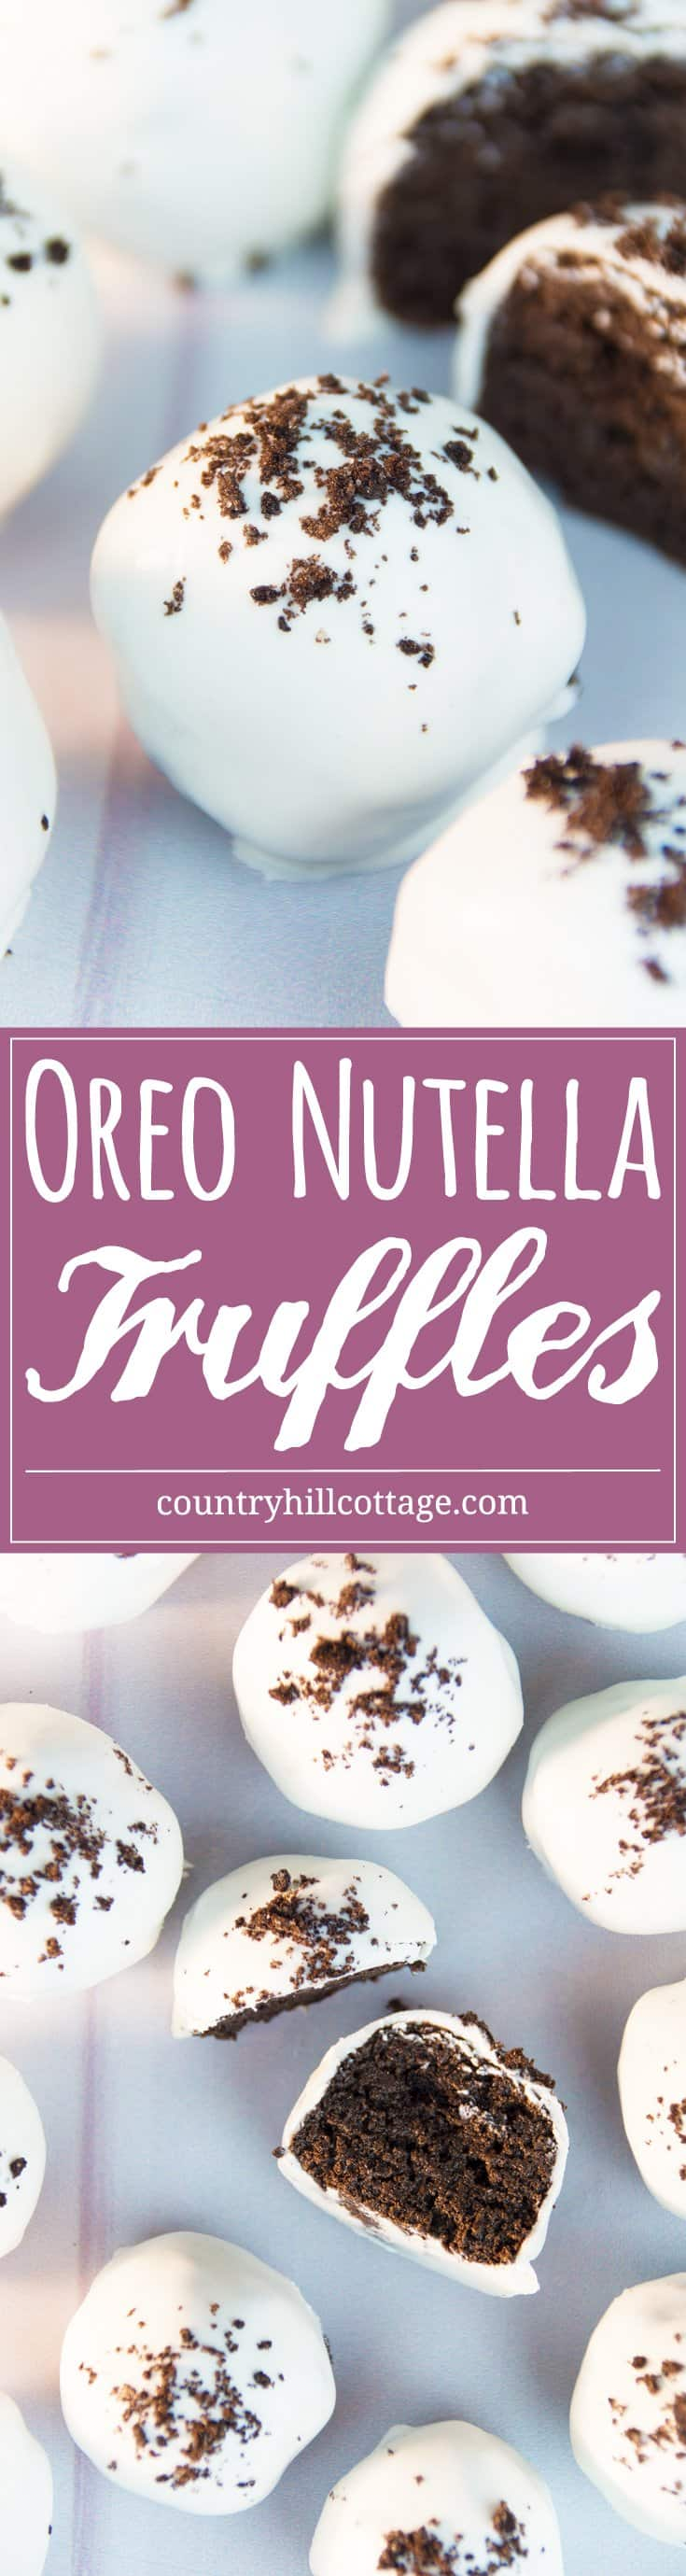 Learn to make no-bake Oreo Nutella bat bites with only 3 ingredients! #nobake #oreobites #Halloween | countryhillcottage.com